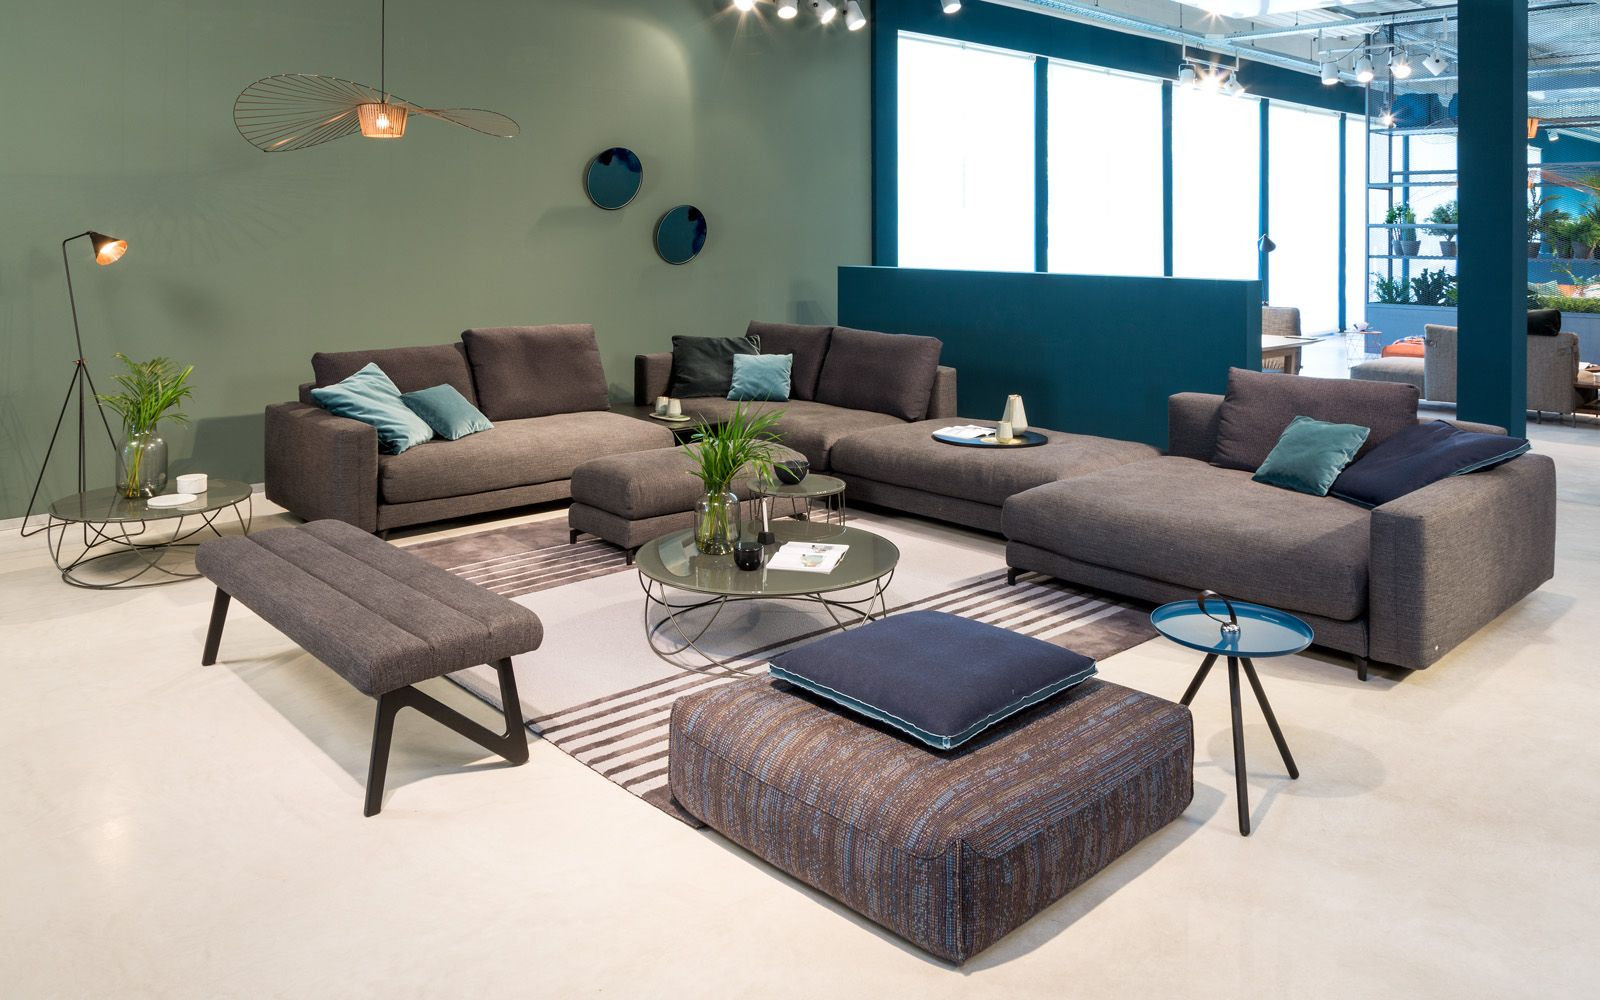 Rolf Benz Sofa Ecksofa The Rolf Benz Nuvola Make Life At Home Perfect For Your Living